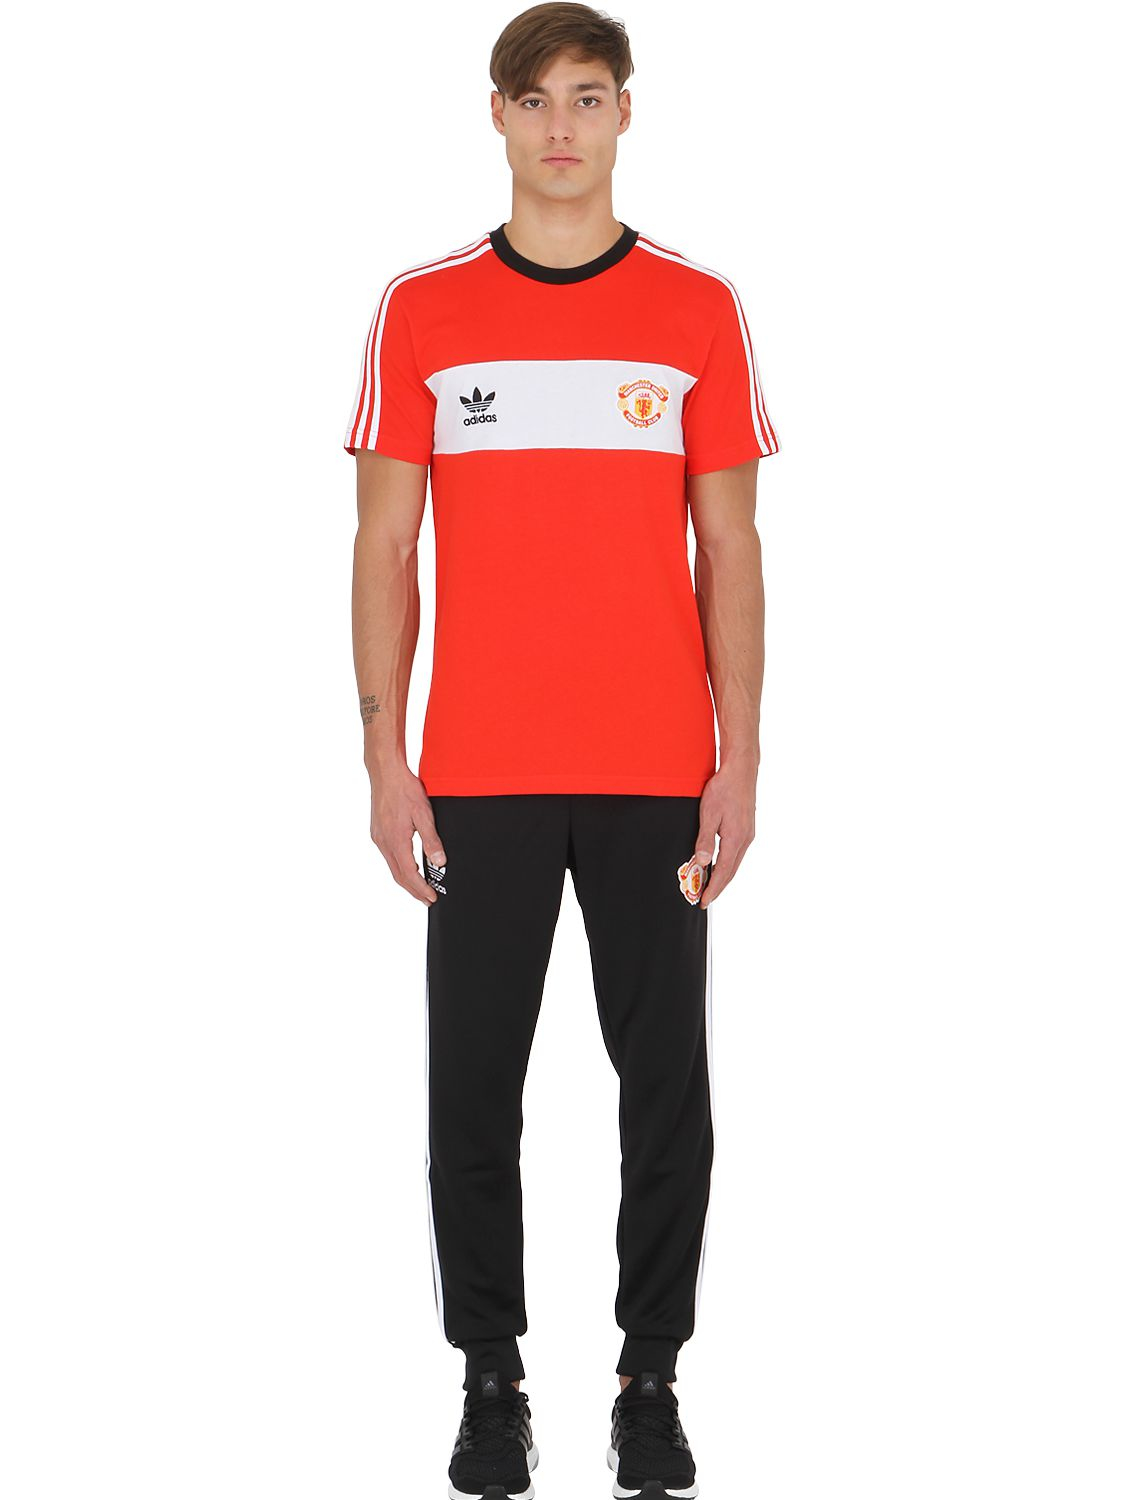 e3558f72e54 adidas Originals Limit.ed Manchester United T-shirt in Red for Men ...